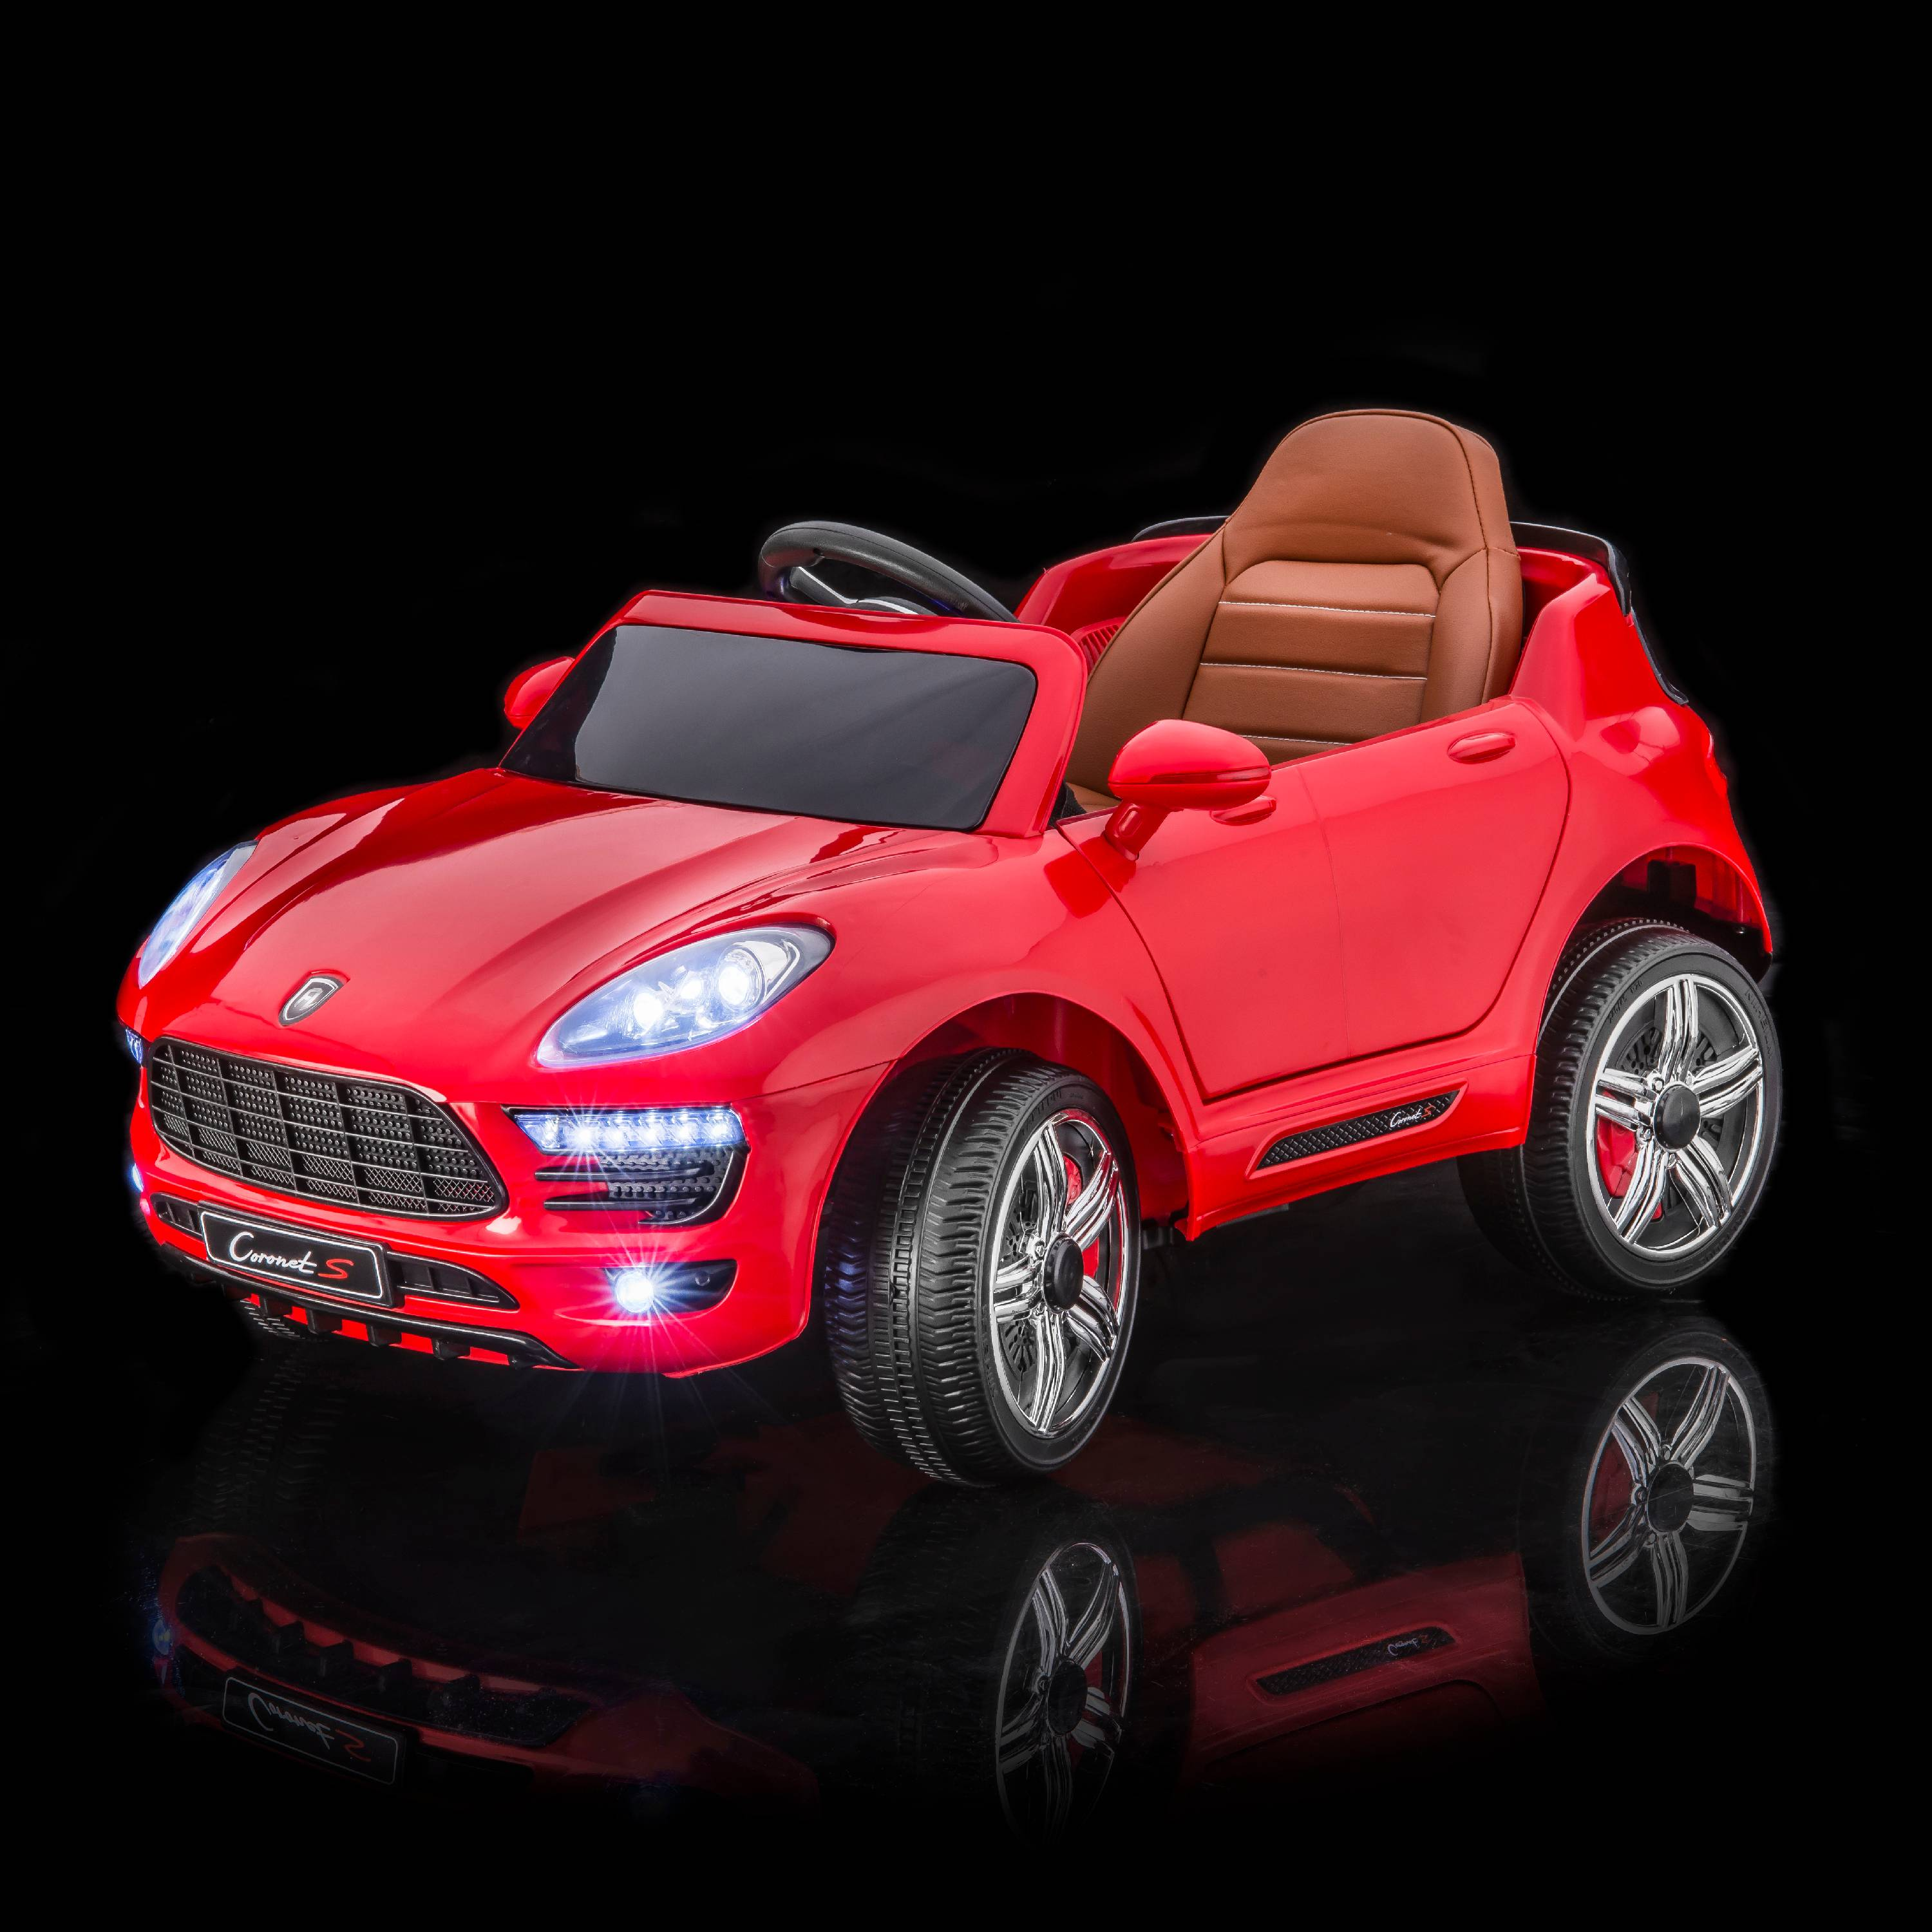 SPORTrax Porsche Macan S Style Kid's Ride On Car, Battery Powered, Remote Control, w/FREE MP3 Player - Red